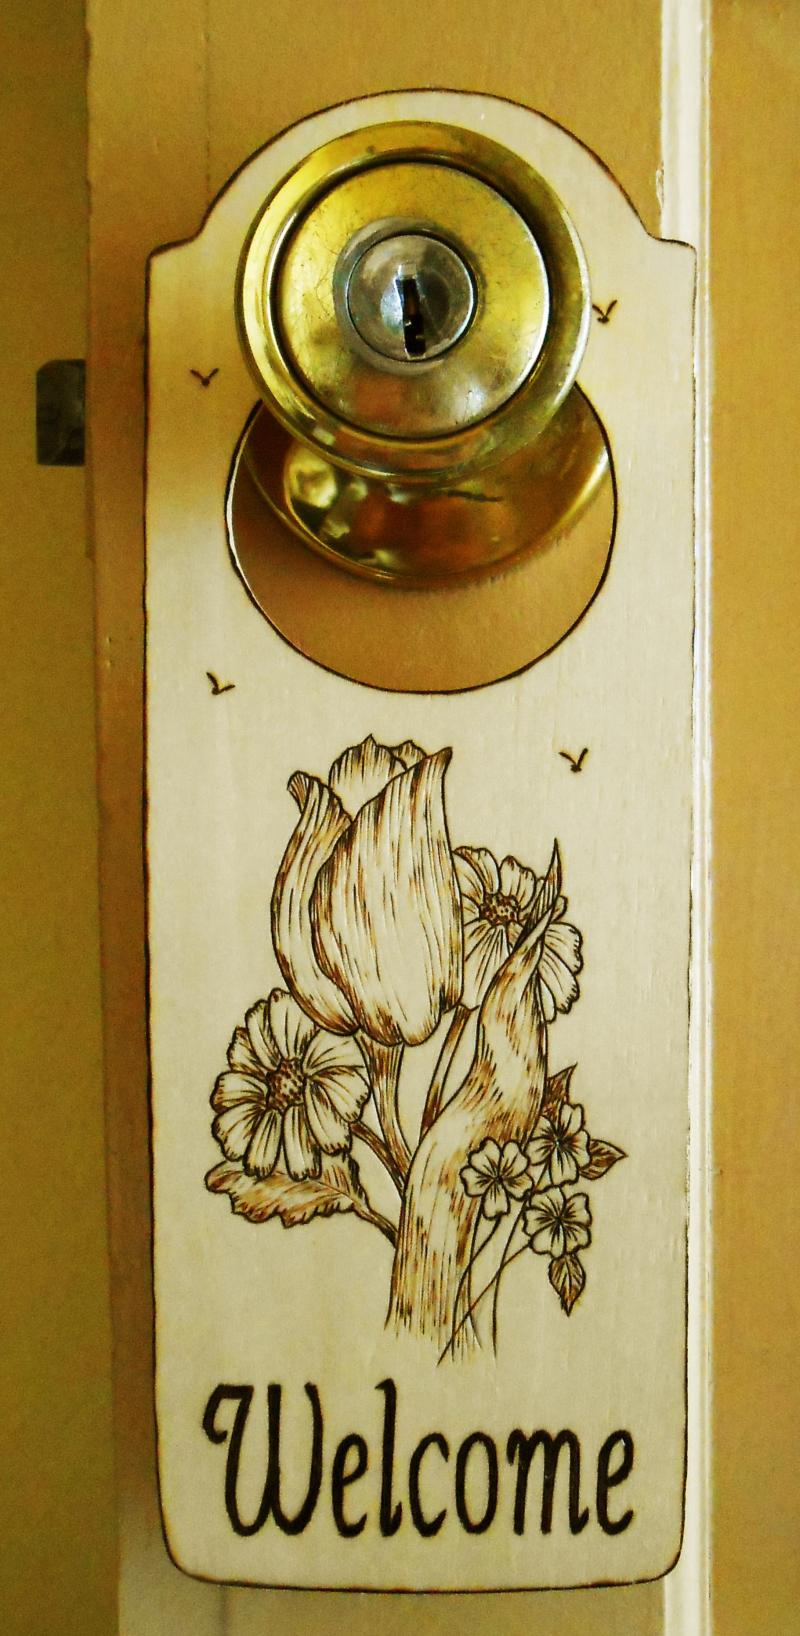 "/31-14, ""FLORAL BOUQUET"", shown on door knob."